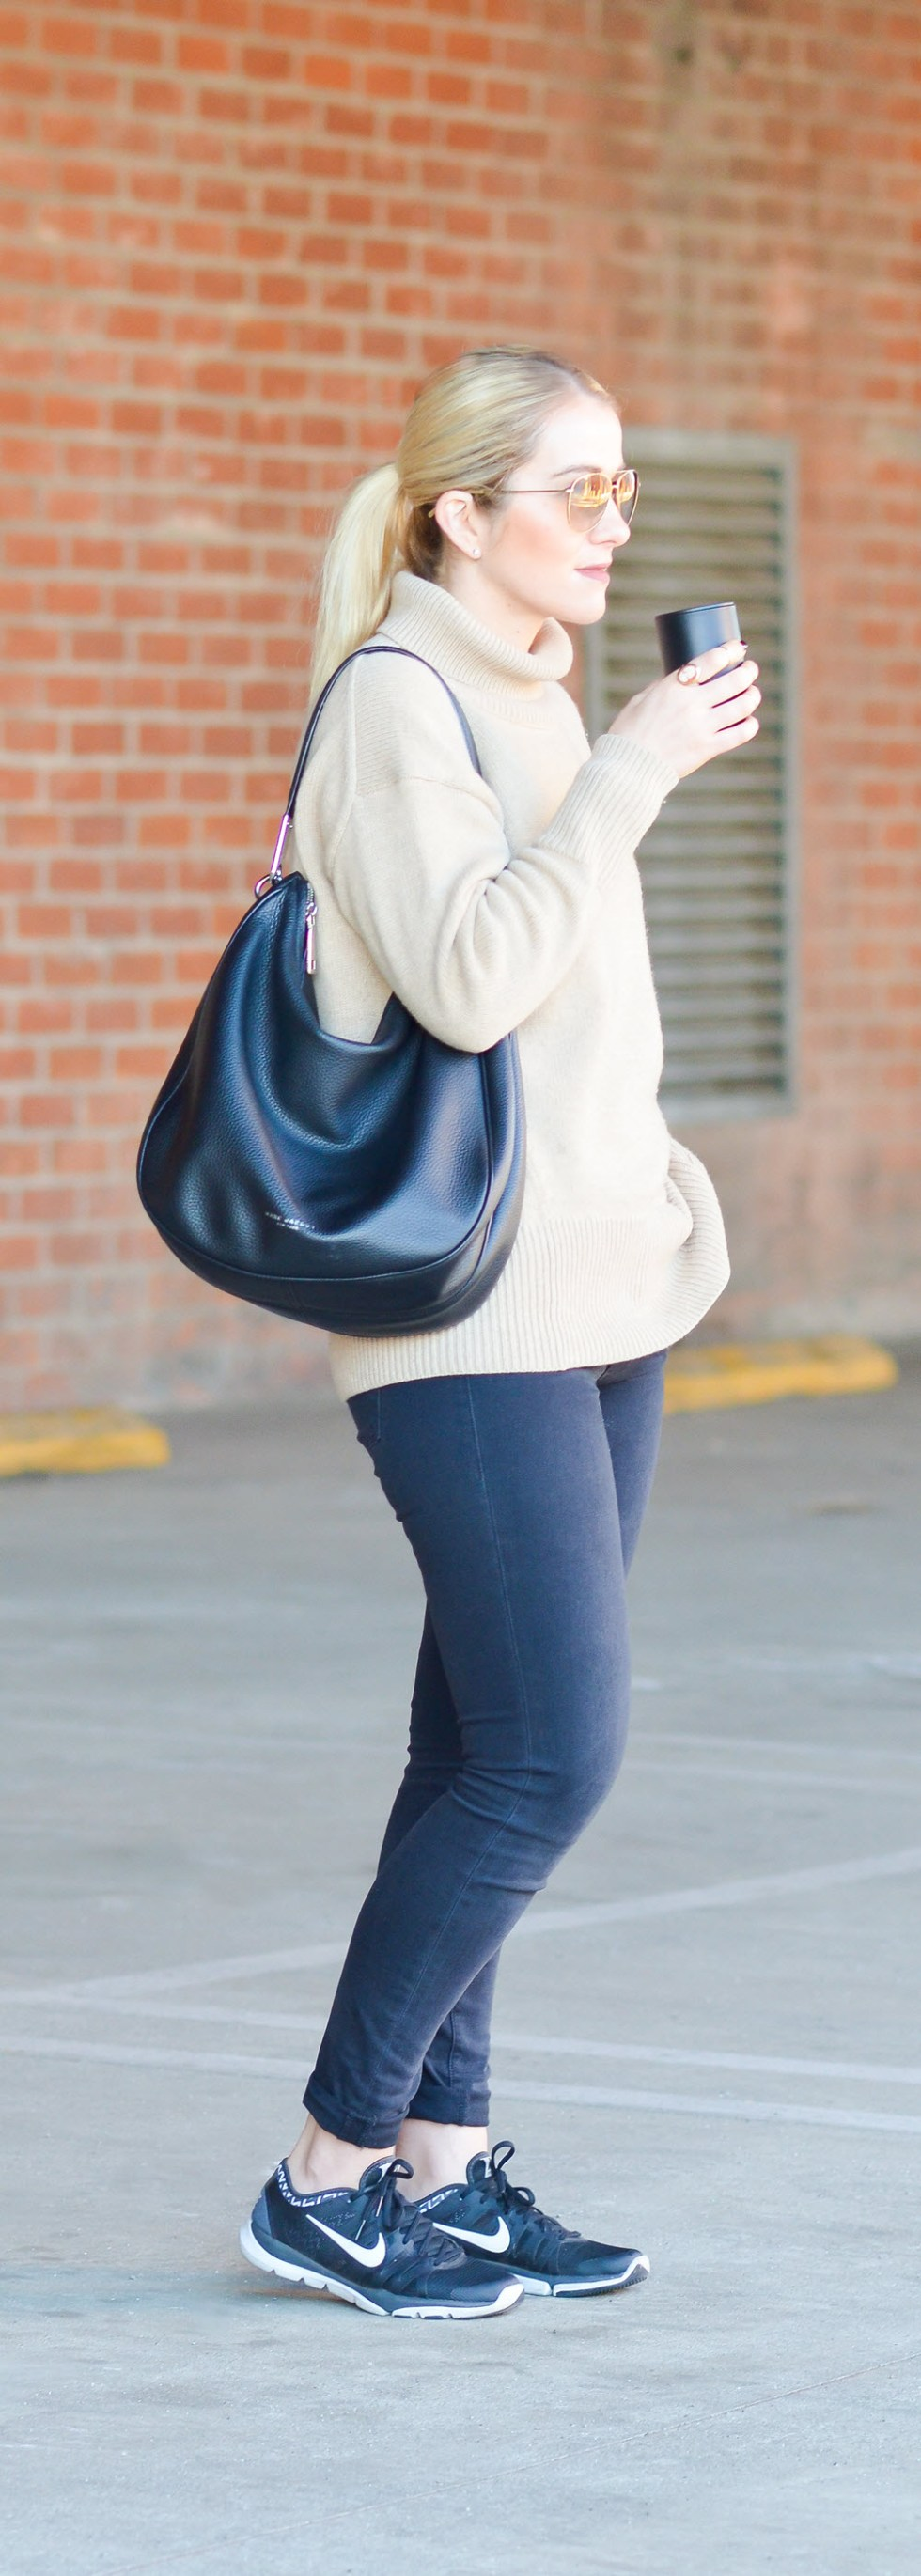 Black Turtleneck Sweater Outfit w. Nike Sneakers + Dark Skinny Jeans. Casual, Chic Winter Outfit